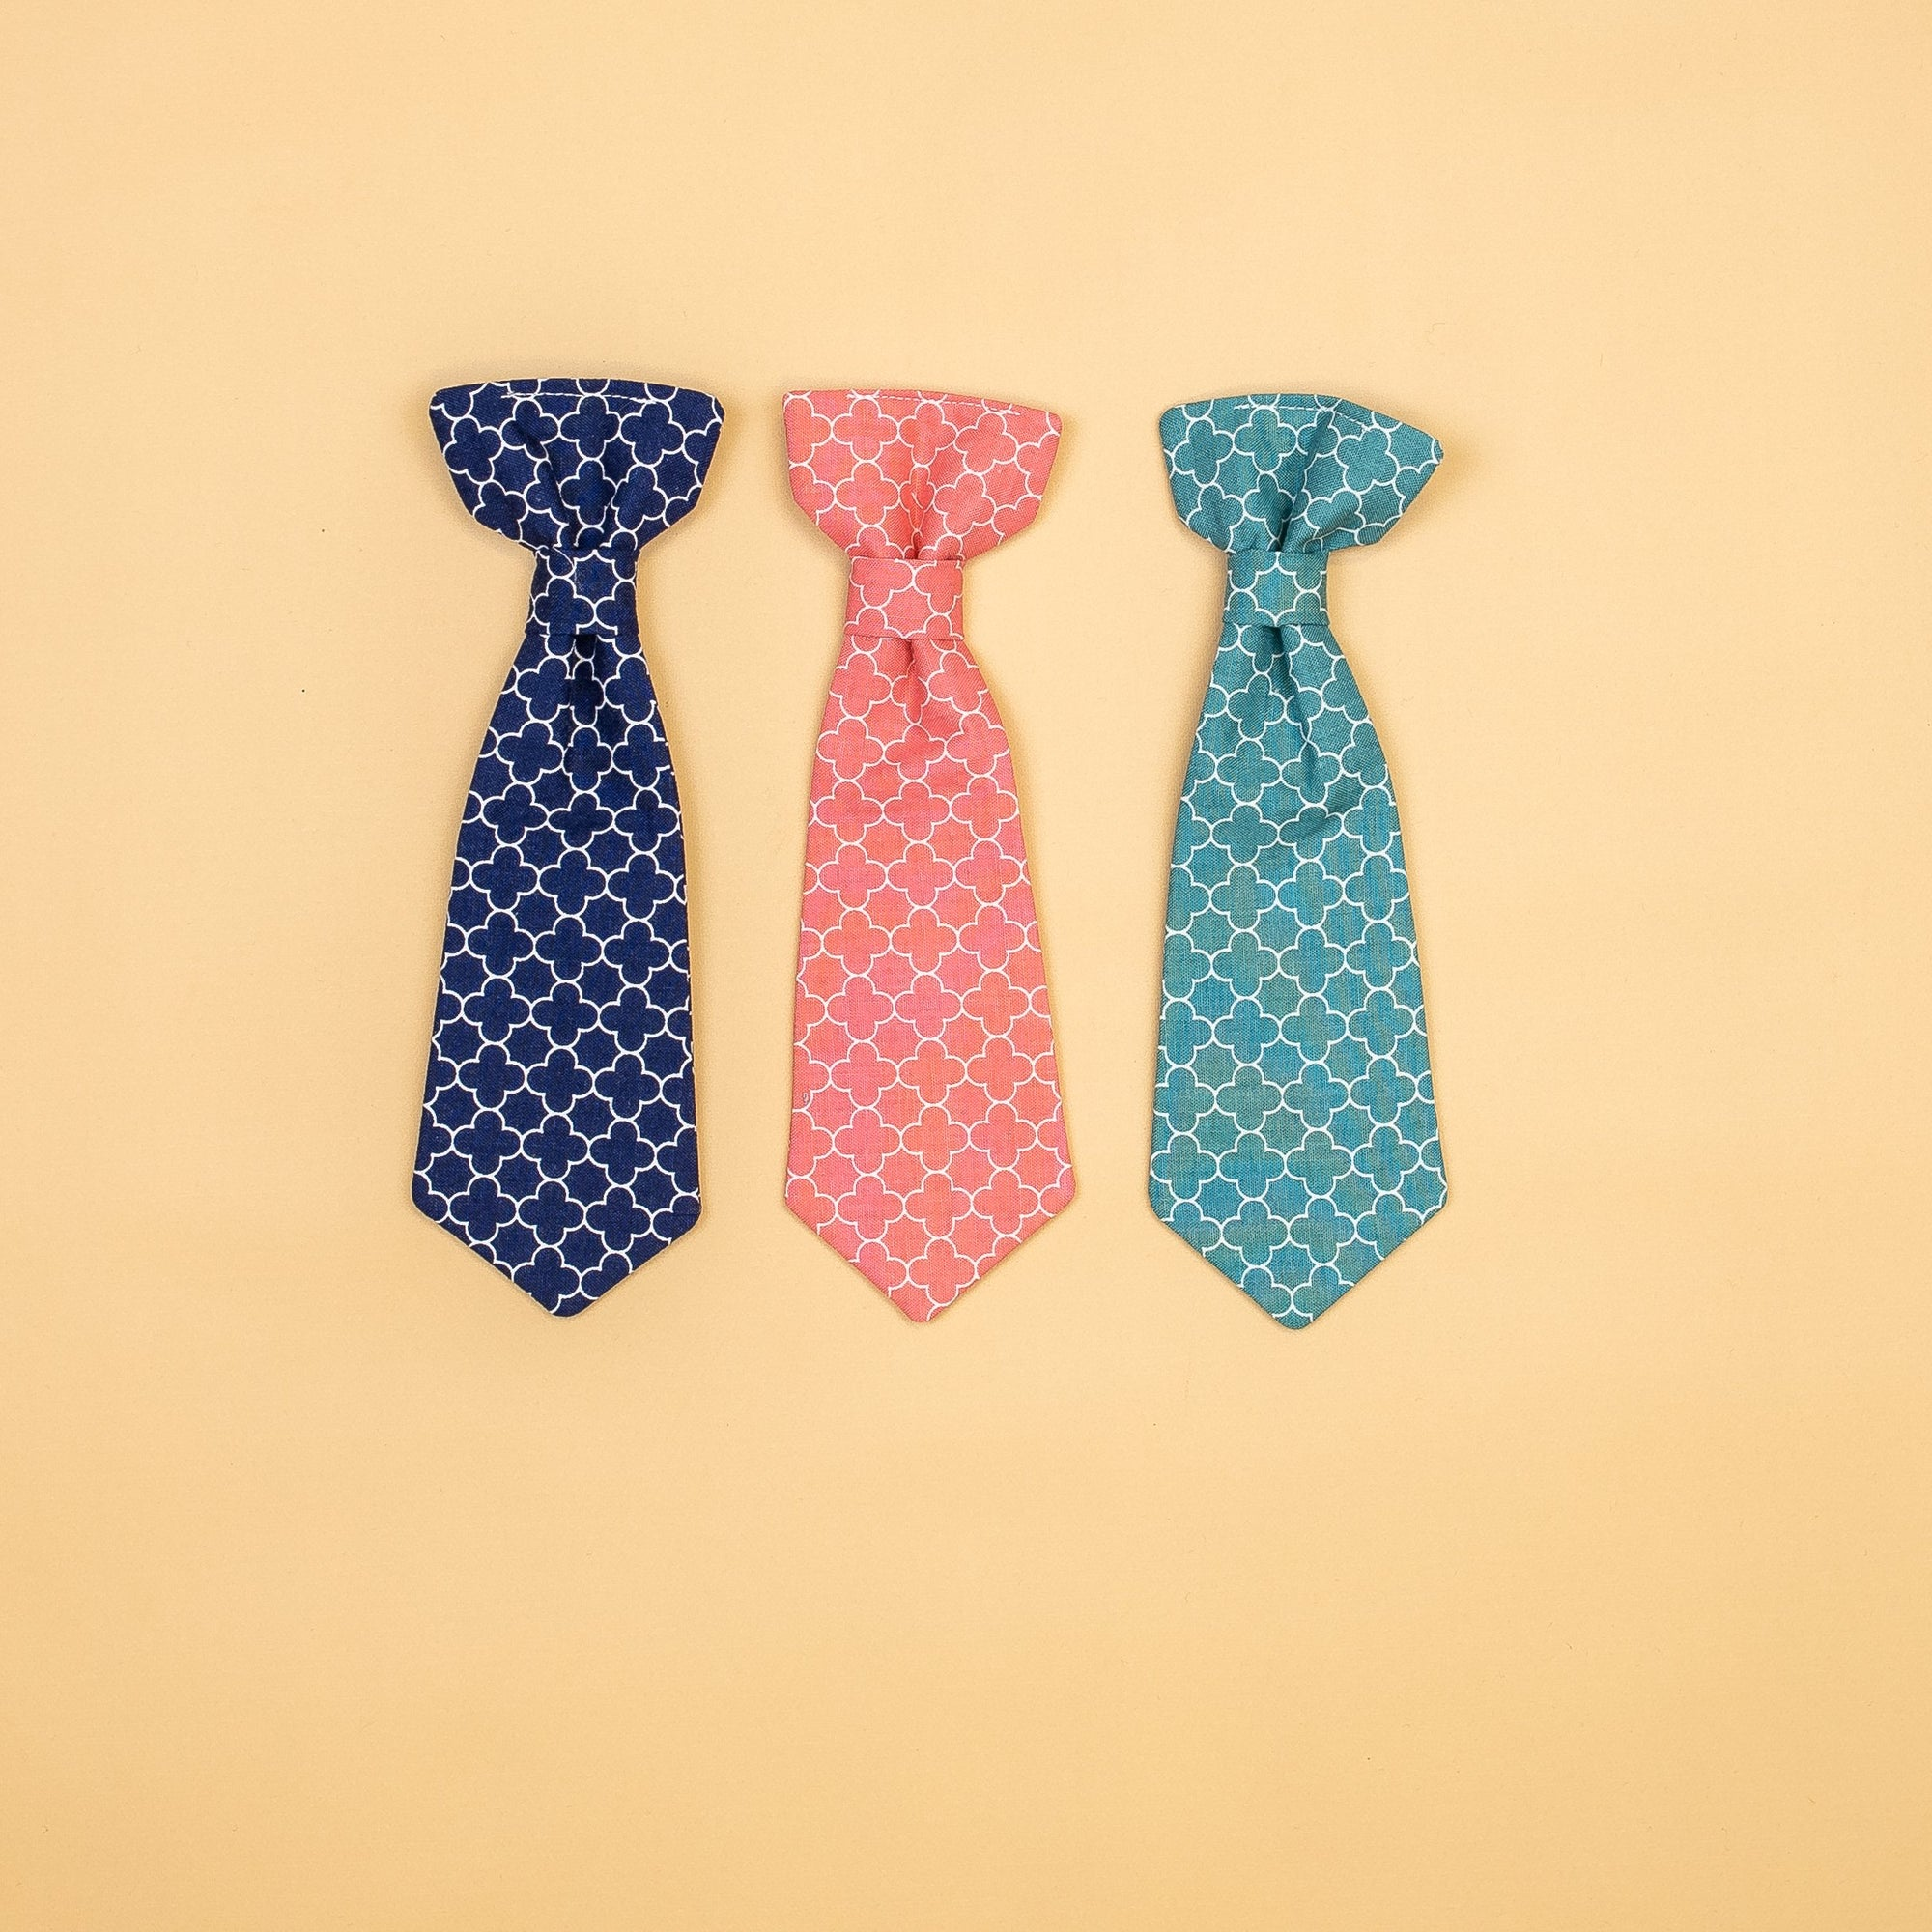 Cuddle Sleep Dream extras Quatrefoil Snap-On Ties